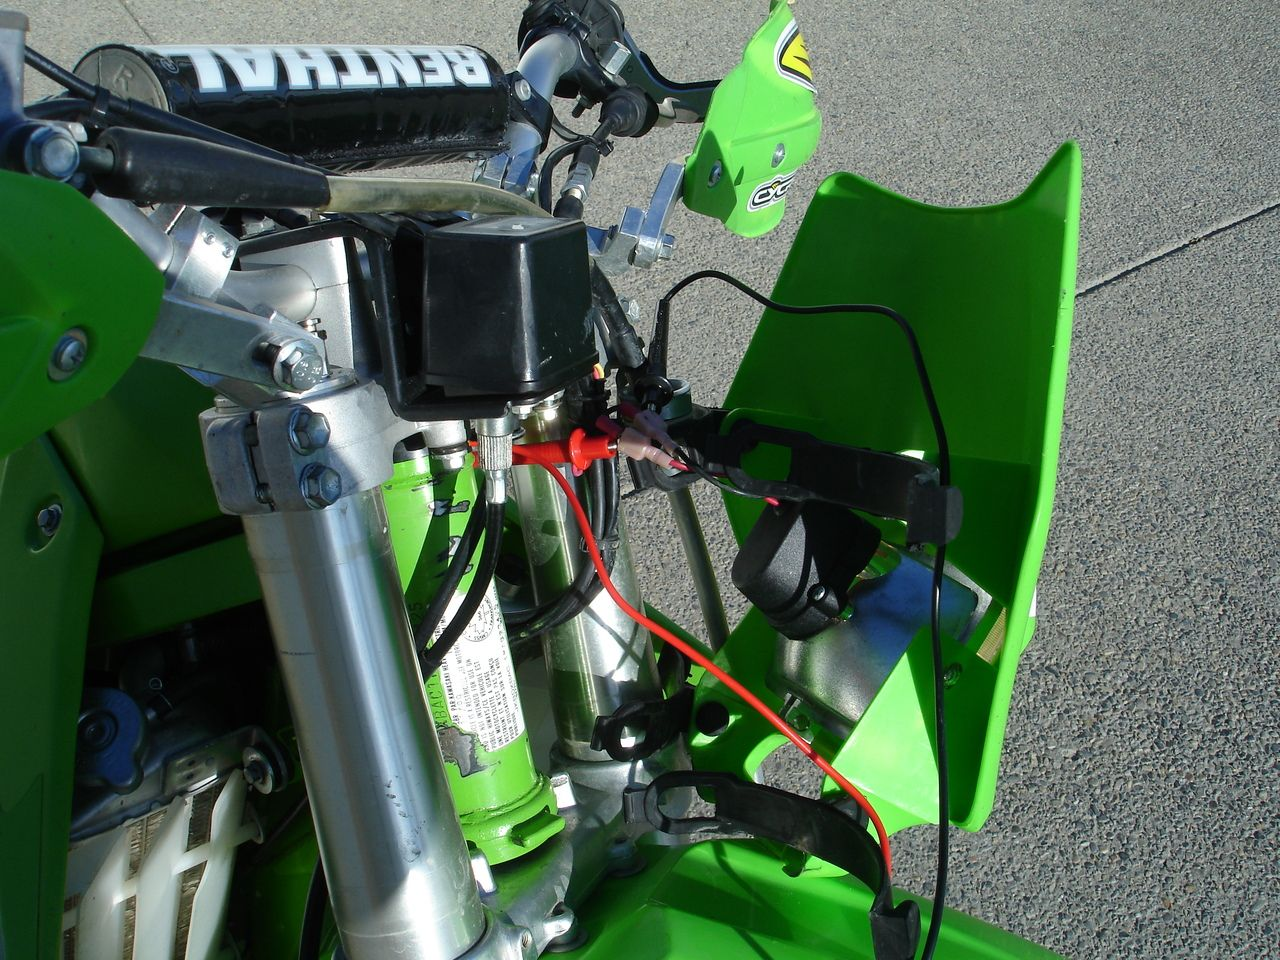 hight resolution of best of the best mods kdxrider net rh kdxrider net 1986 kawasaki kxt250 2000 kawasaki kdx 200 kdx 175 wiring diagram